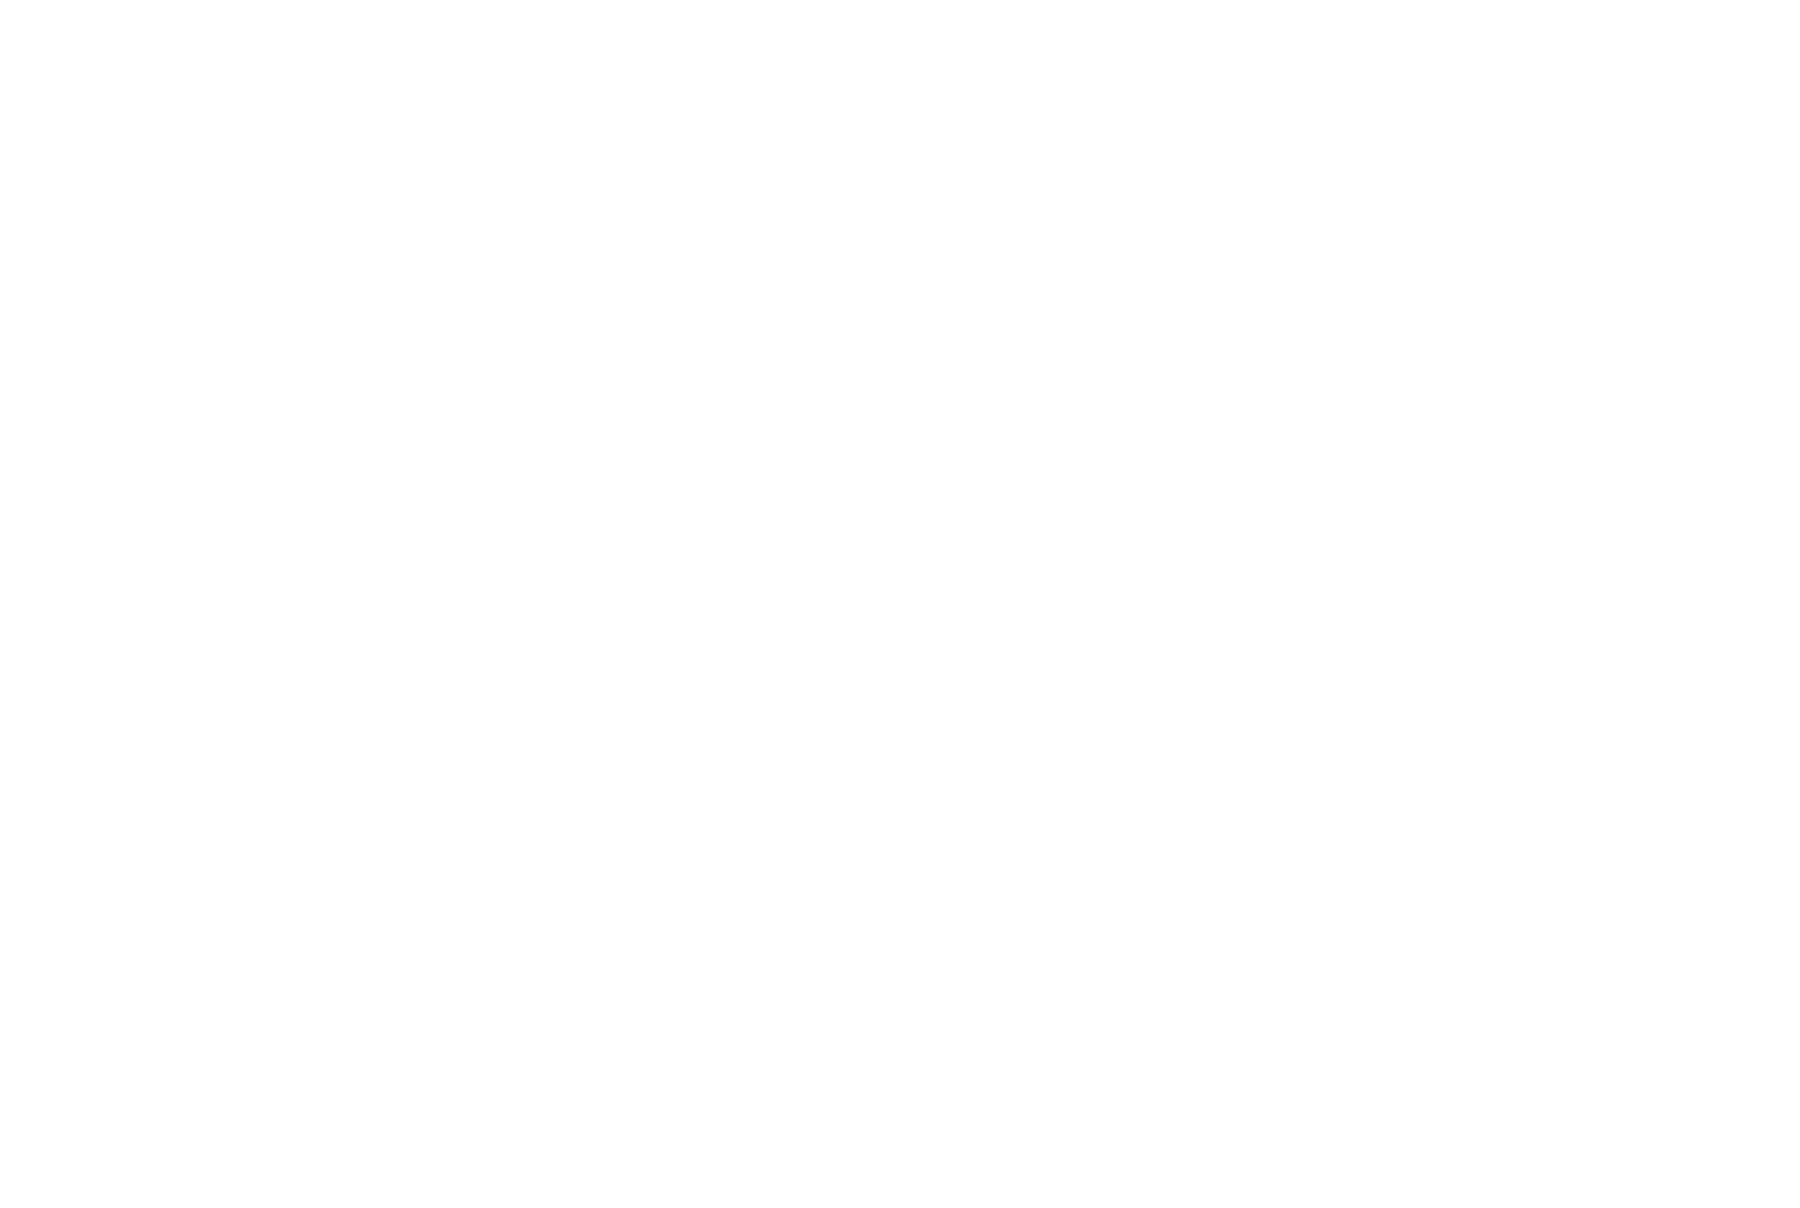 In-home elderly home care services